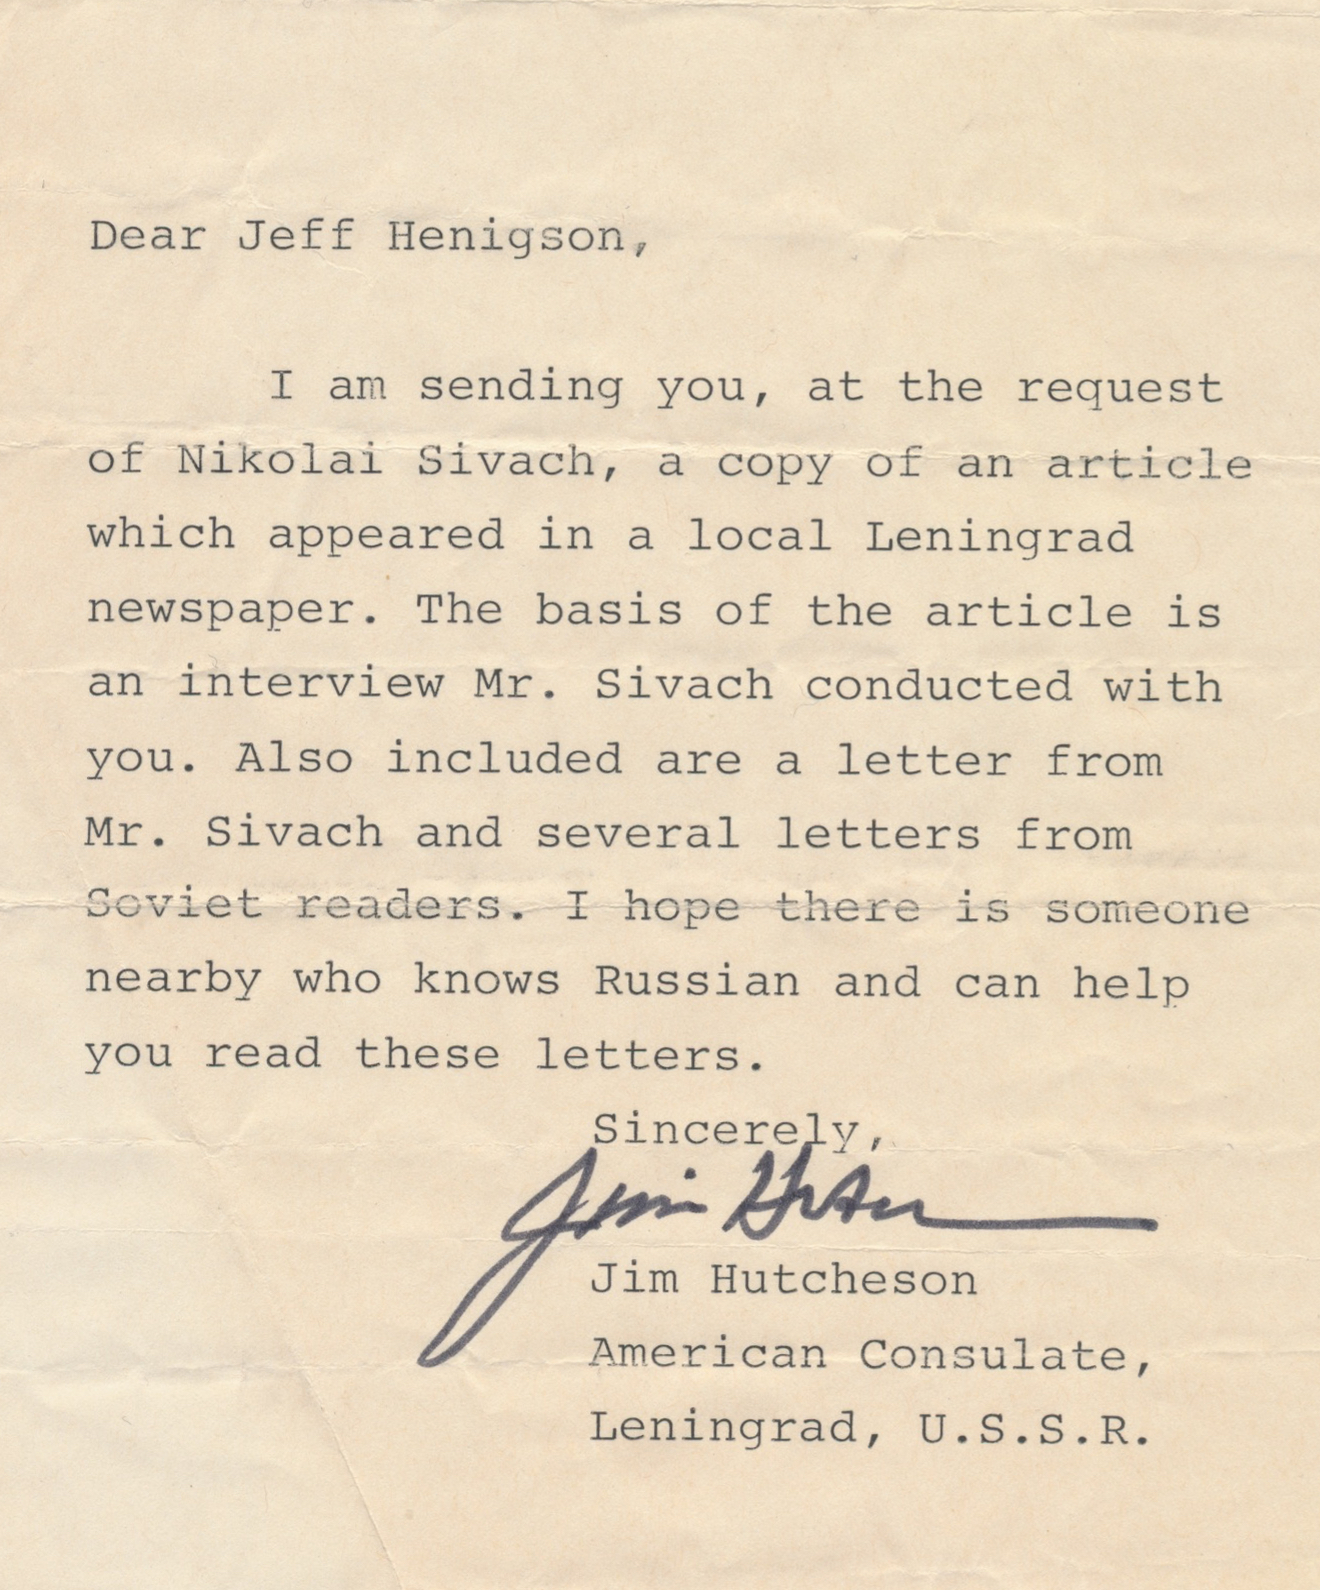 Letter to Jeff from U.S. Consulate office, Leningrad